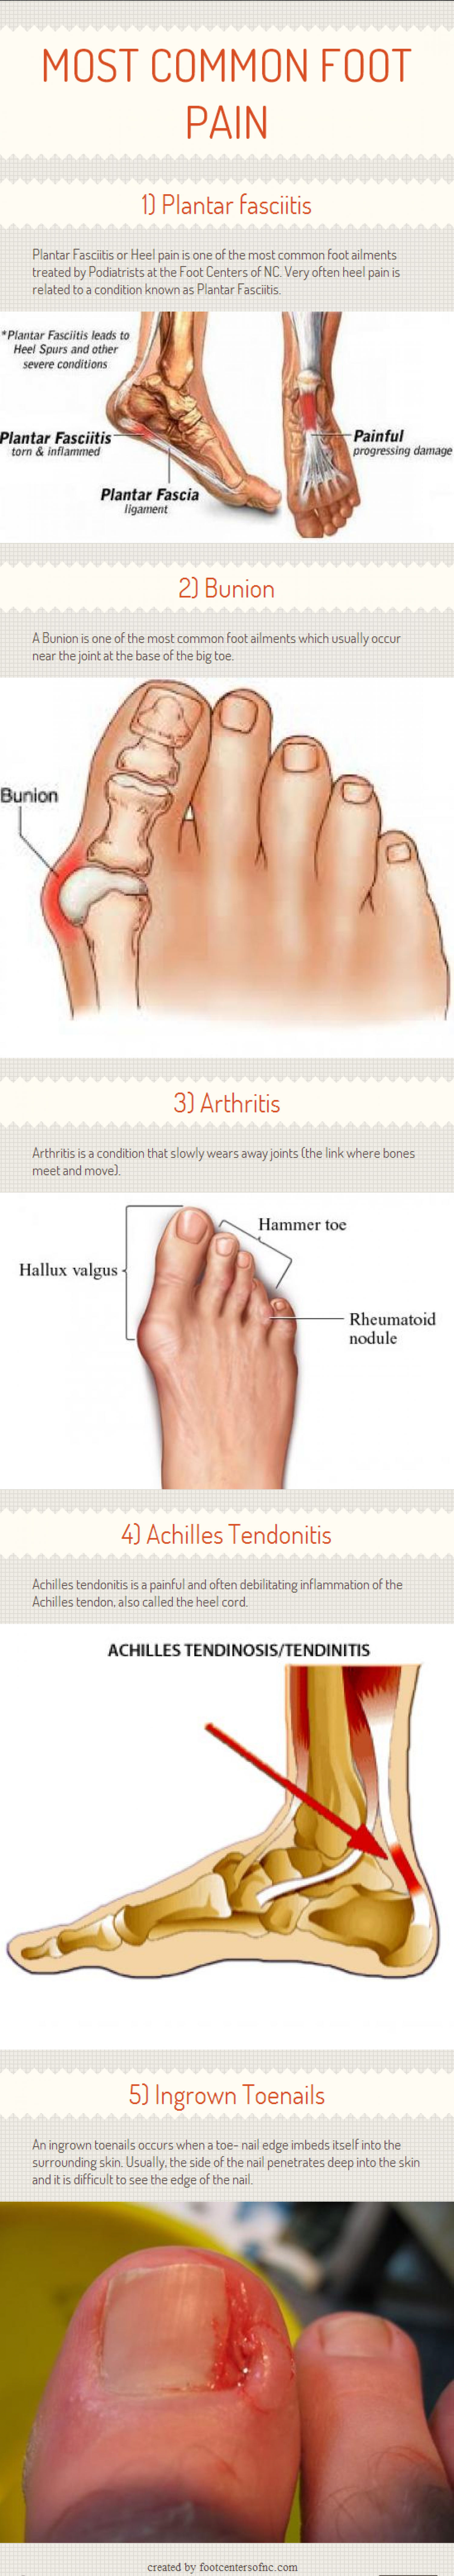 MOST COMMON FOOT PAIN Infographic